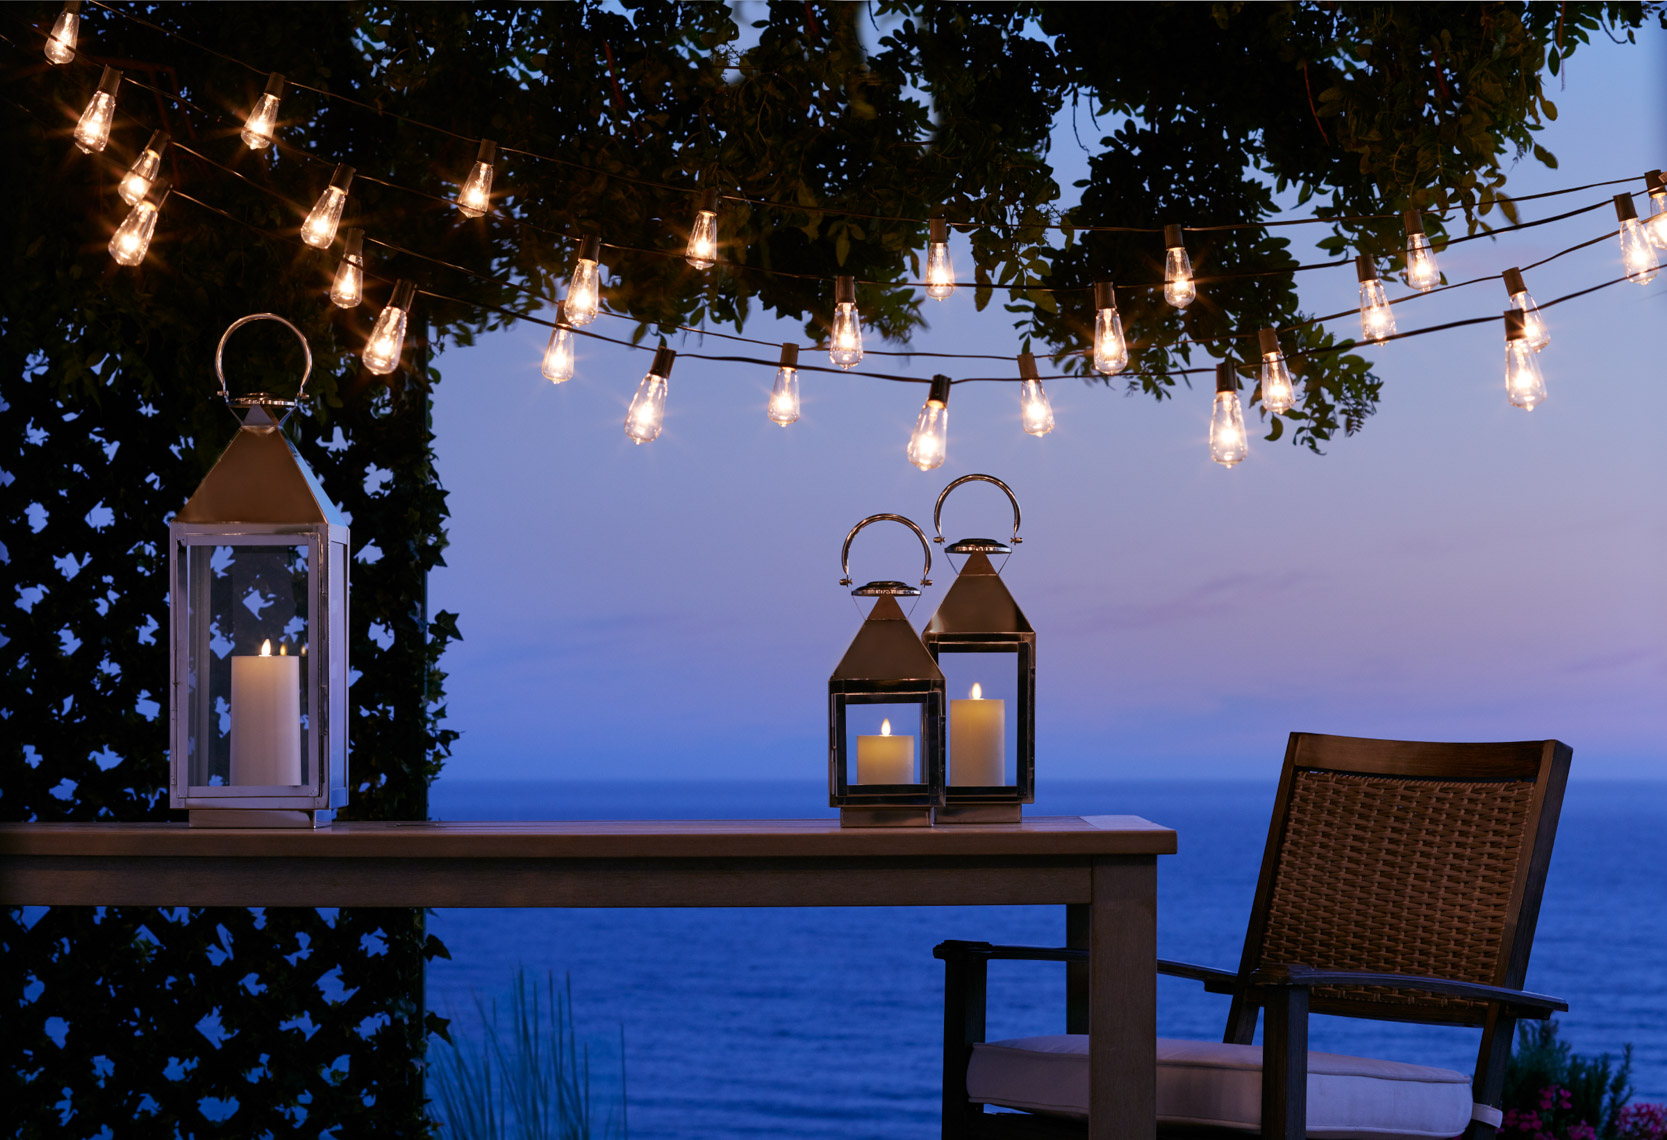 Stainless steel lanterns on wood table at dusk with string of lights above San Francisco product photographer